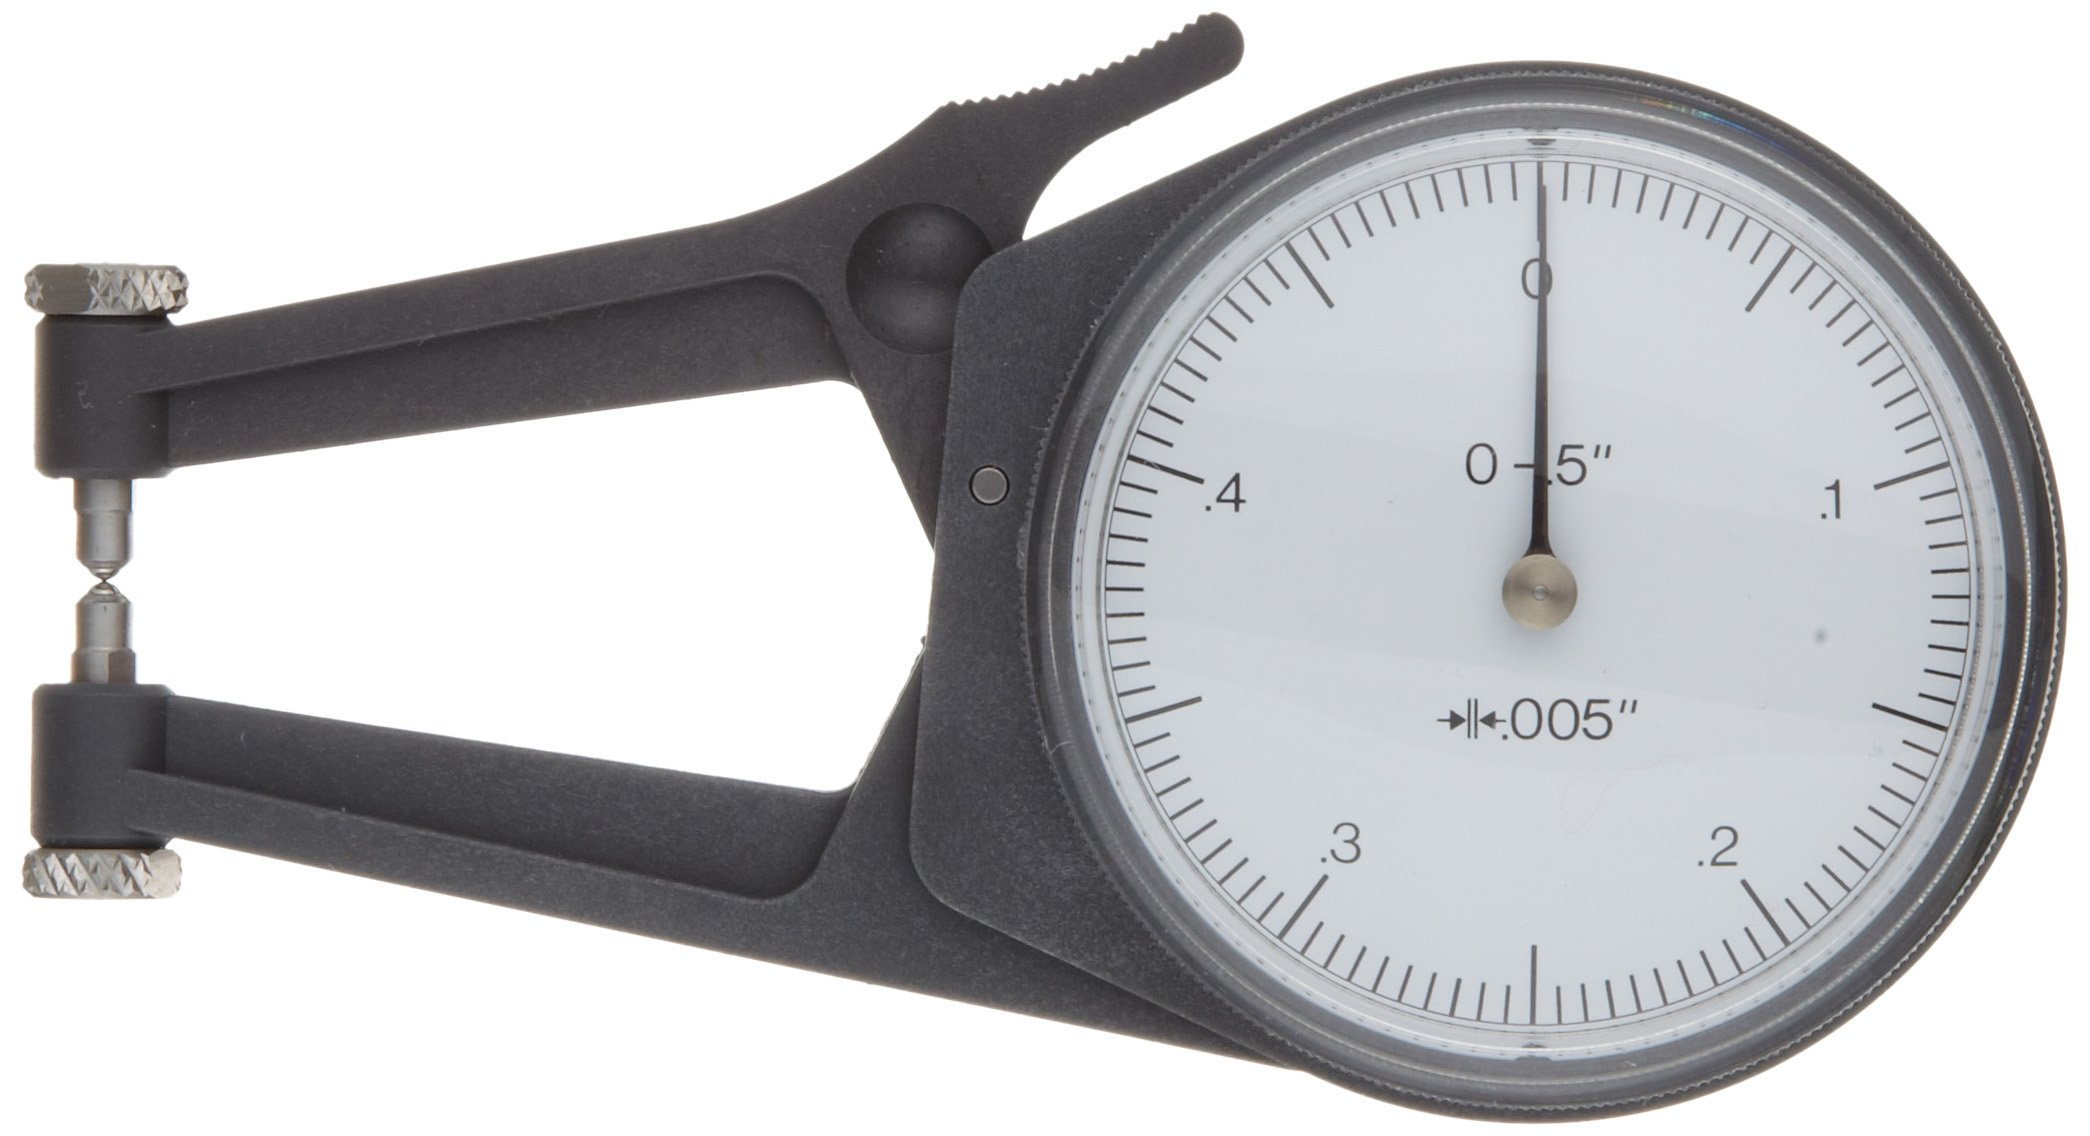 Mitutoyo 209-450 Caliper Gauge, Pointed Jaw, White Face, 0-0.4'' Range, +/-0.0008'' Accuracy, 0.0002'' Resolution, Meets IP65 Specifications